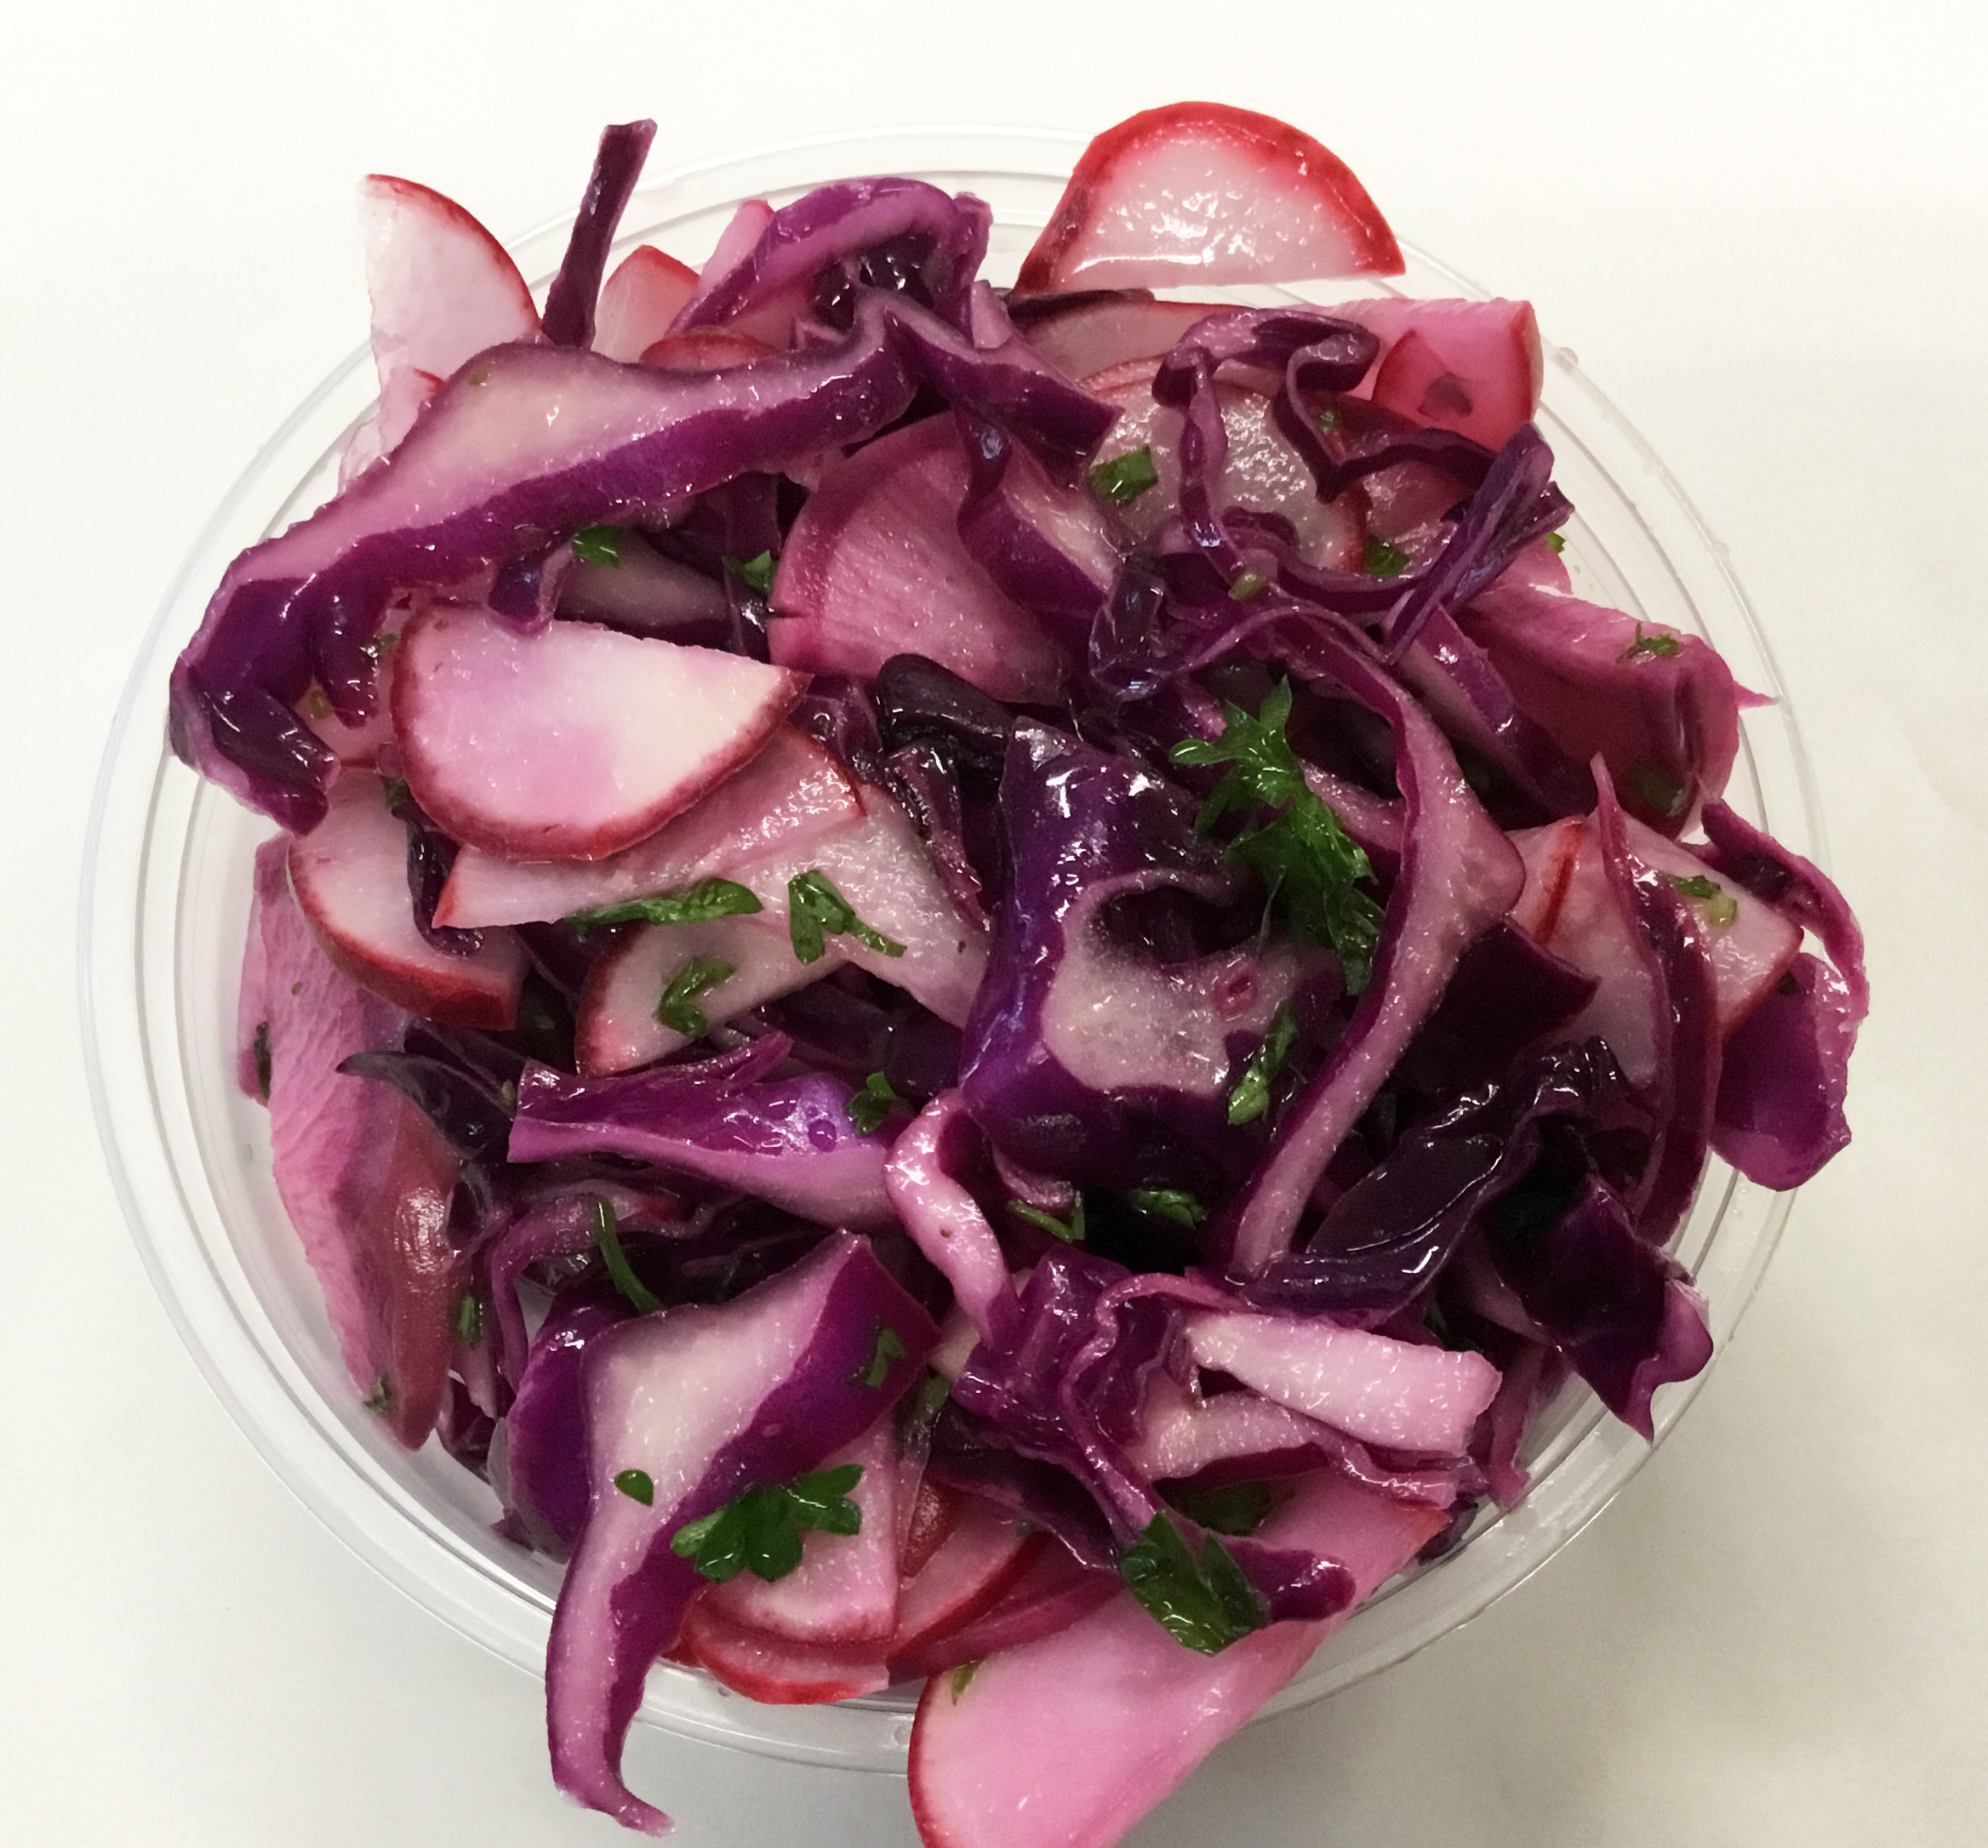 red slaw of cabbage, radishes, purple daikon and parsley, apple cider vinegar dressing